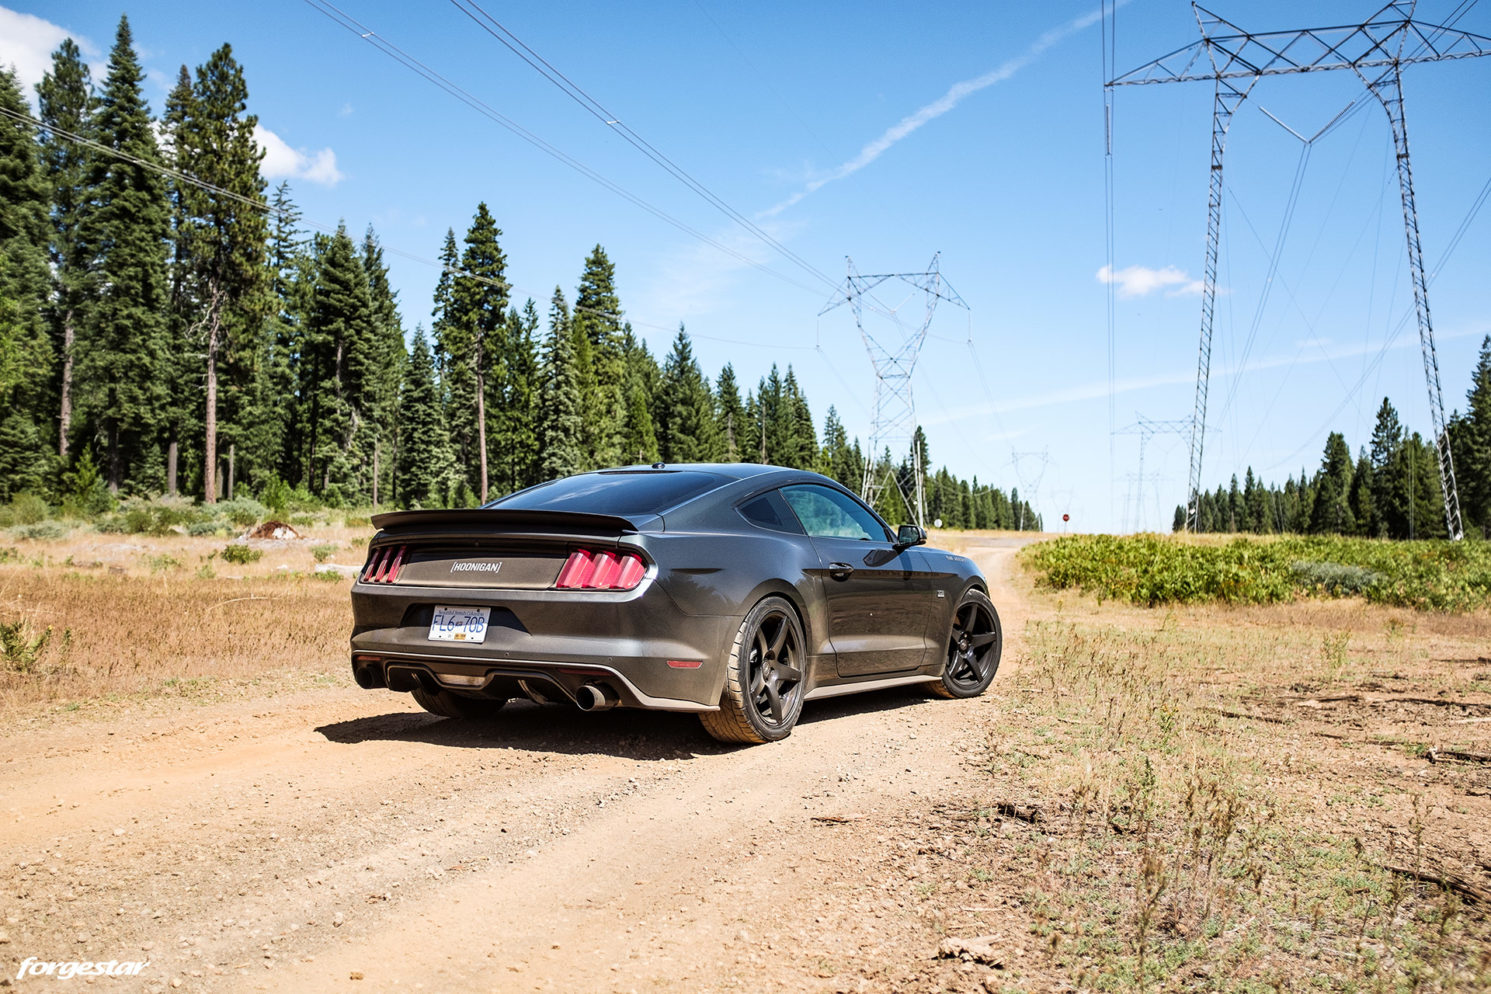 cf5-gray-ford-mustang-gt-s550-matte-black-5-spoke-rims-forgestar-wheels-j-1491x994.jpg